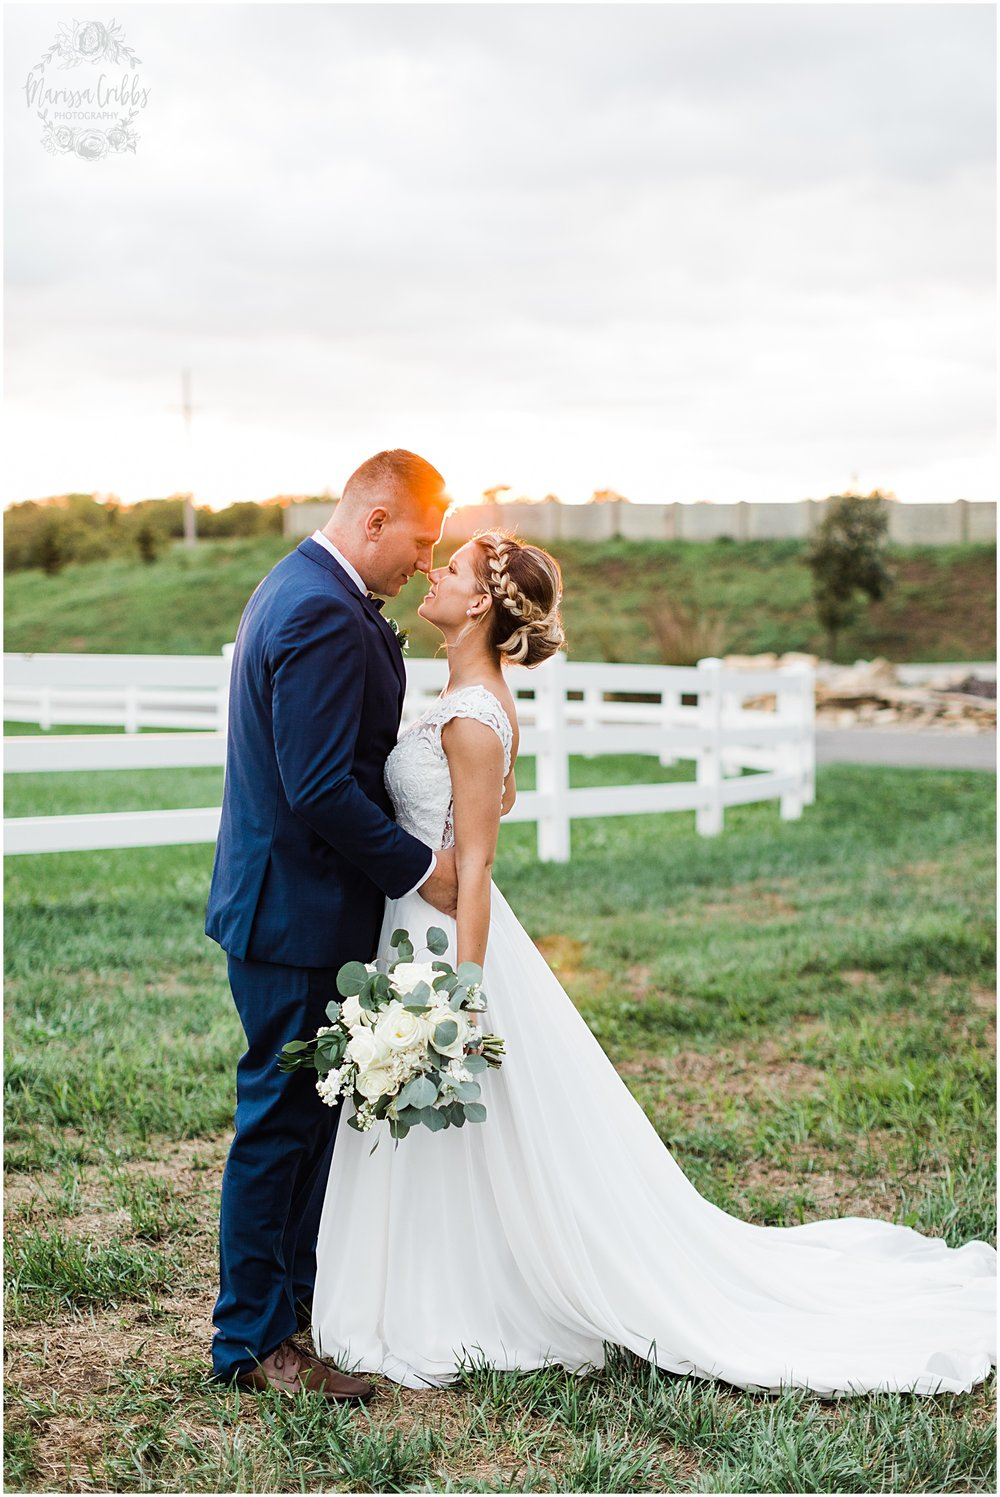 ROUNKLES WEDDING | MARISSA CRIBBS PHOTOGRAPHY | MILDALE FARM_6174.jpg